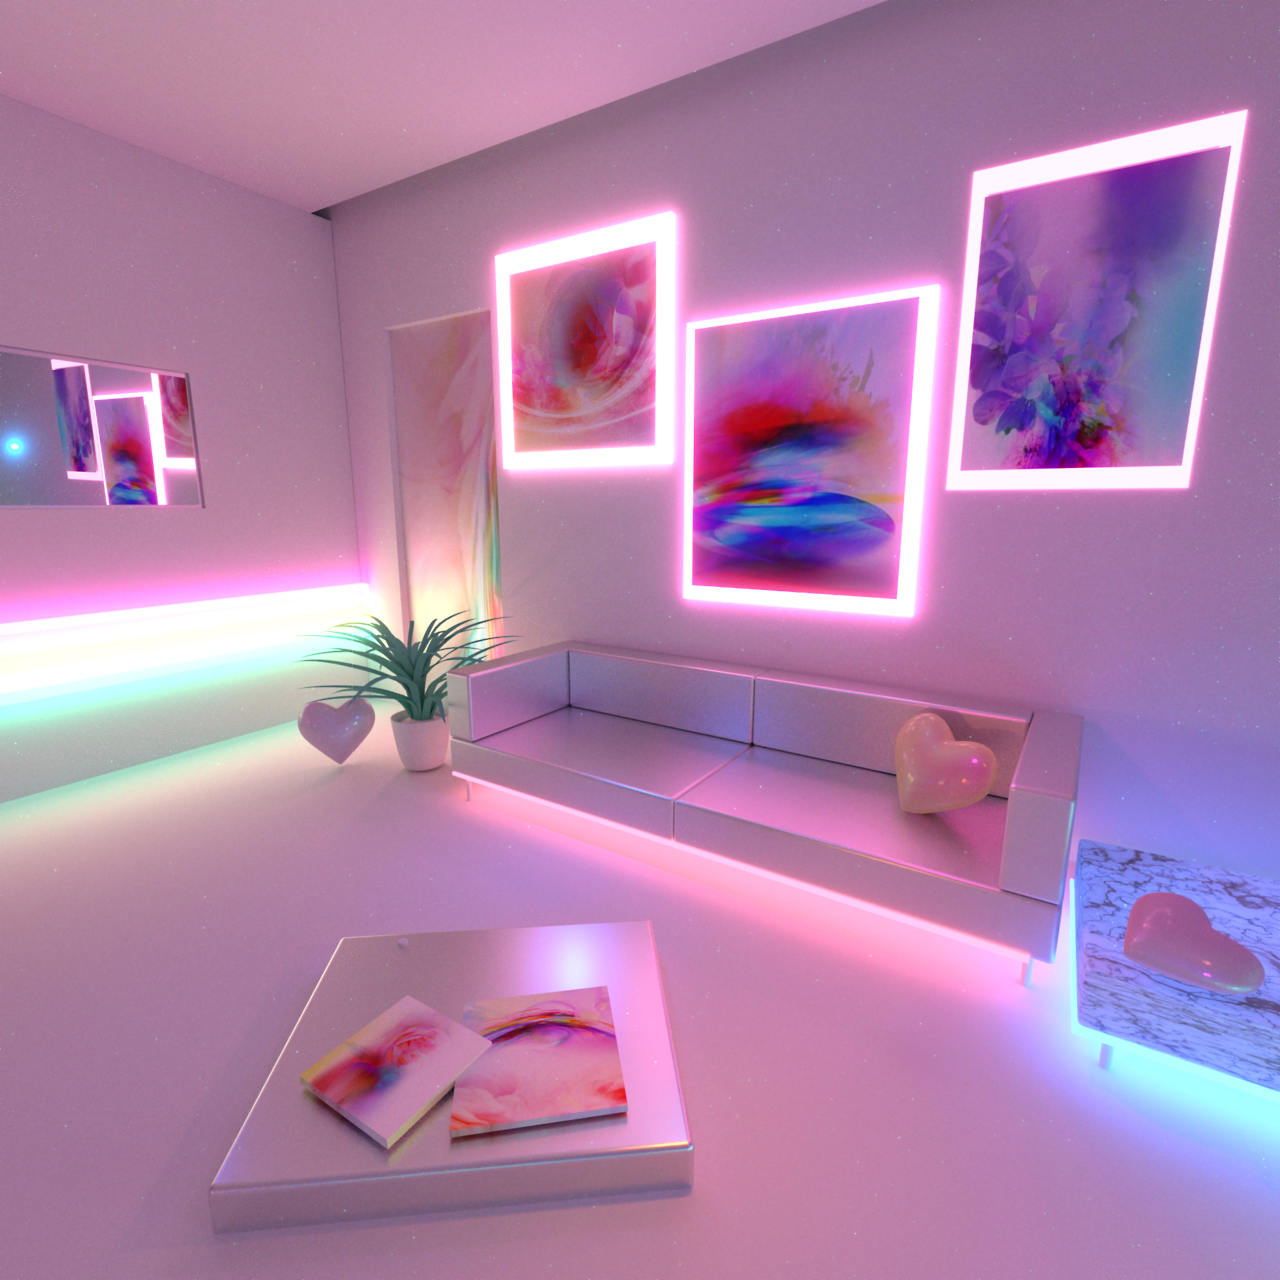 Xternalnecessity Part 1 Of A Collab Series Of A Virtual Room I